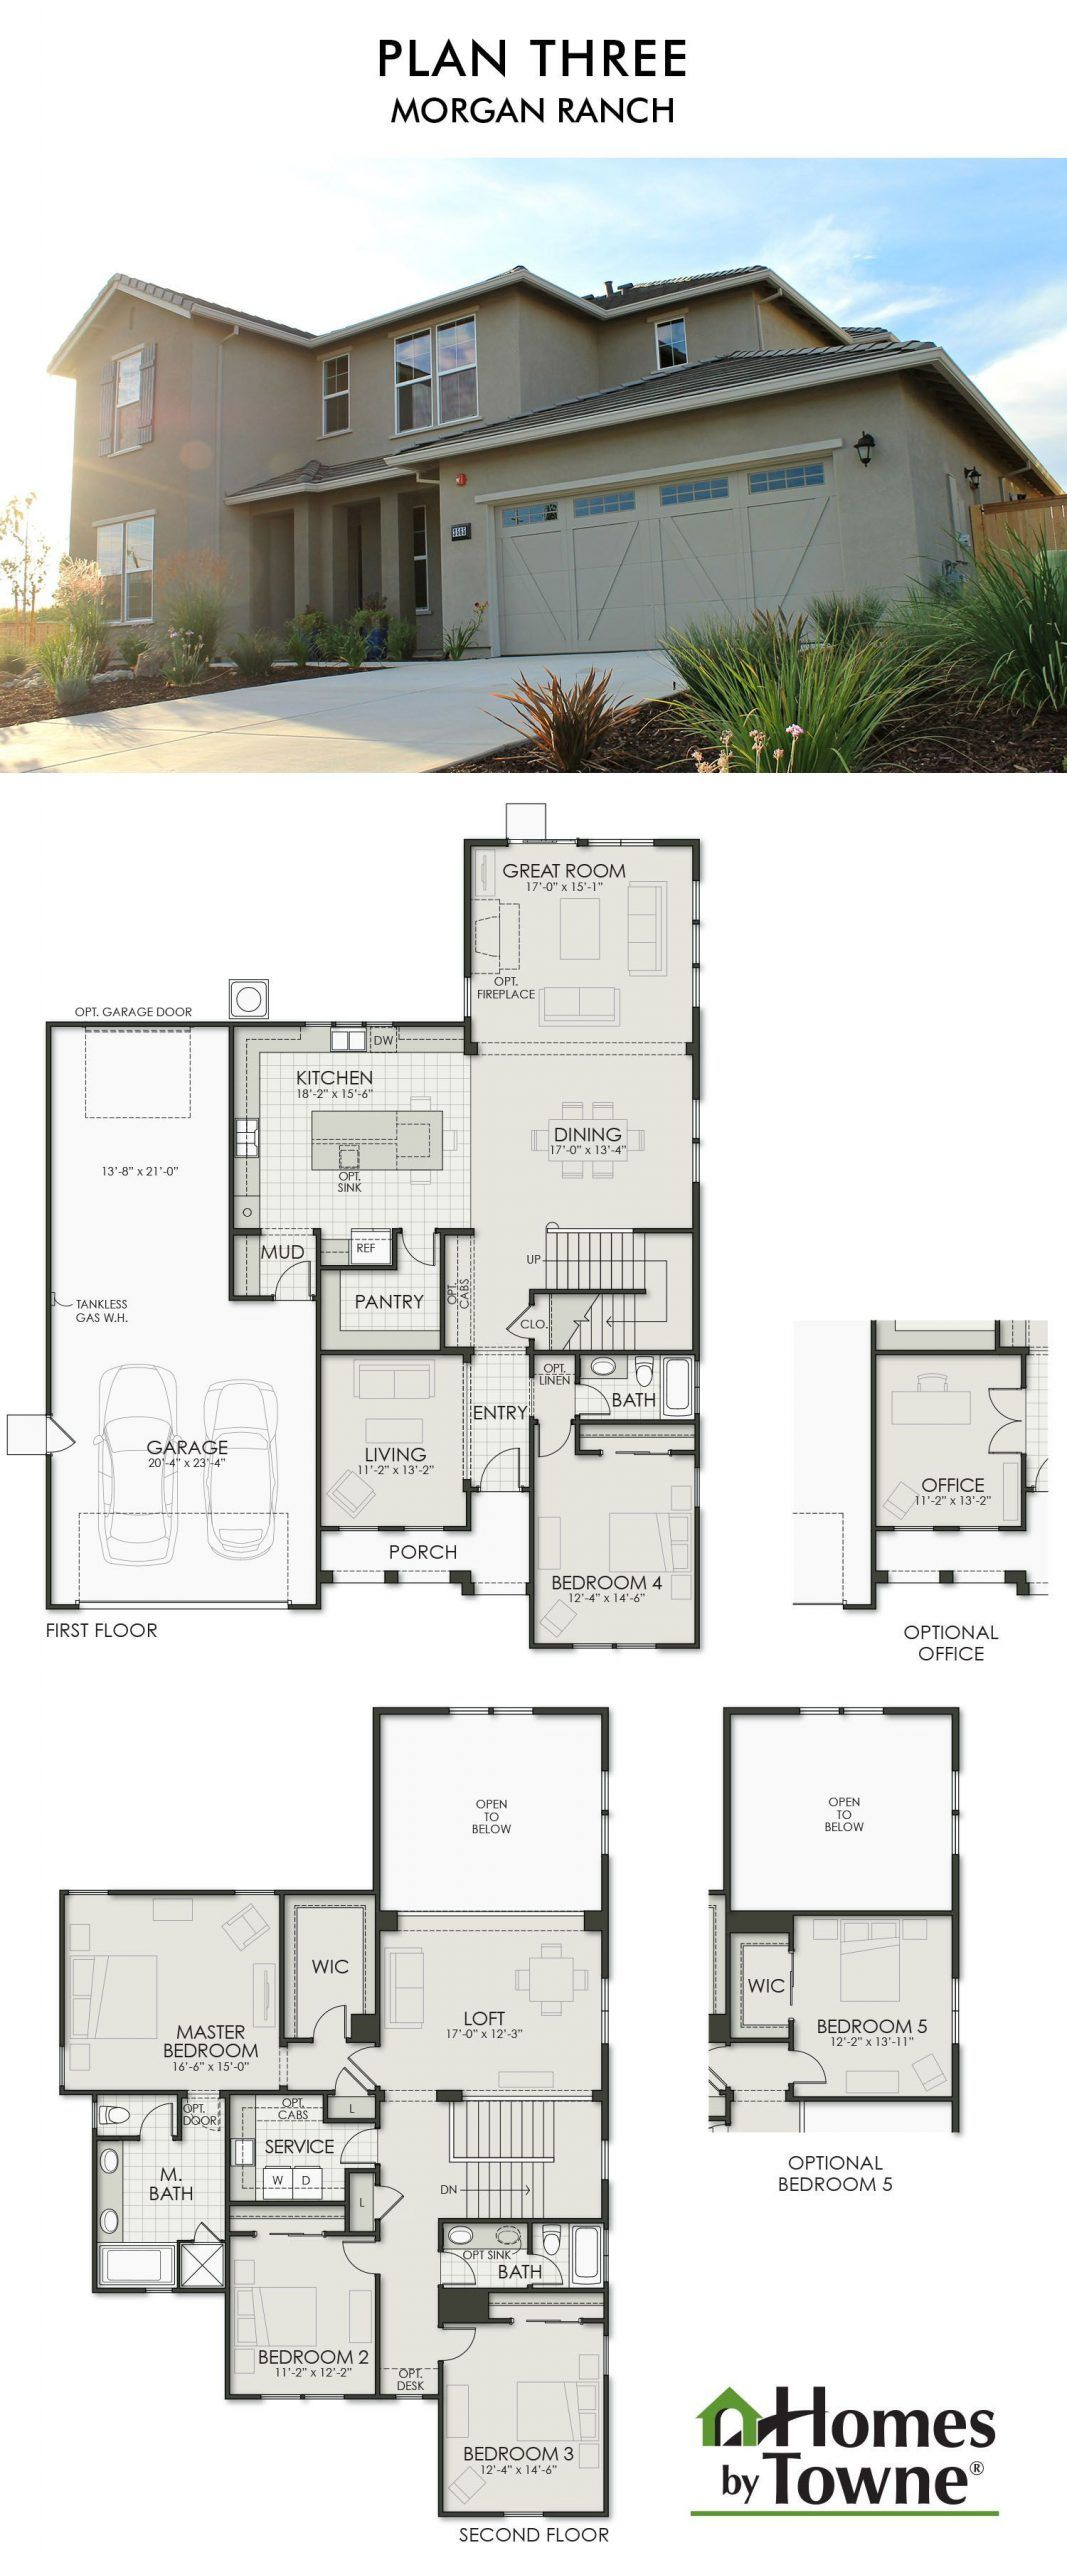 Affordable Ranch House Plans 2021 In 2021 House Plans With Photos Ranch House Plans Affordable House Plans